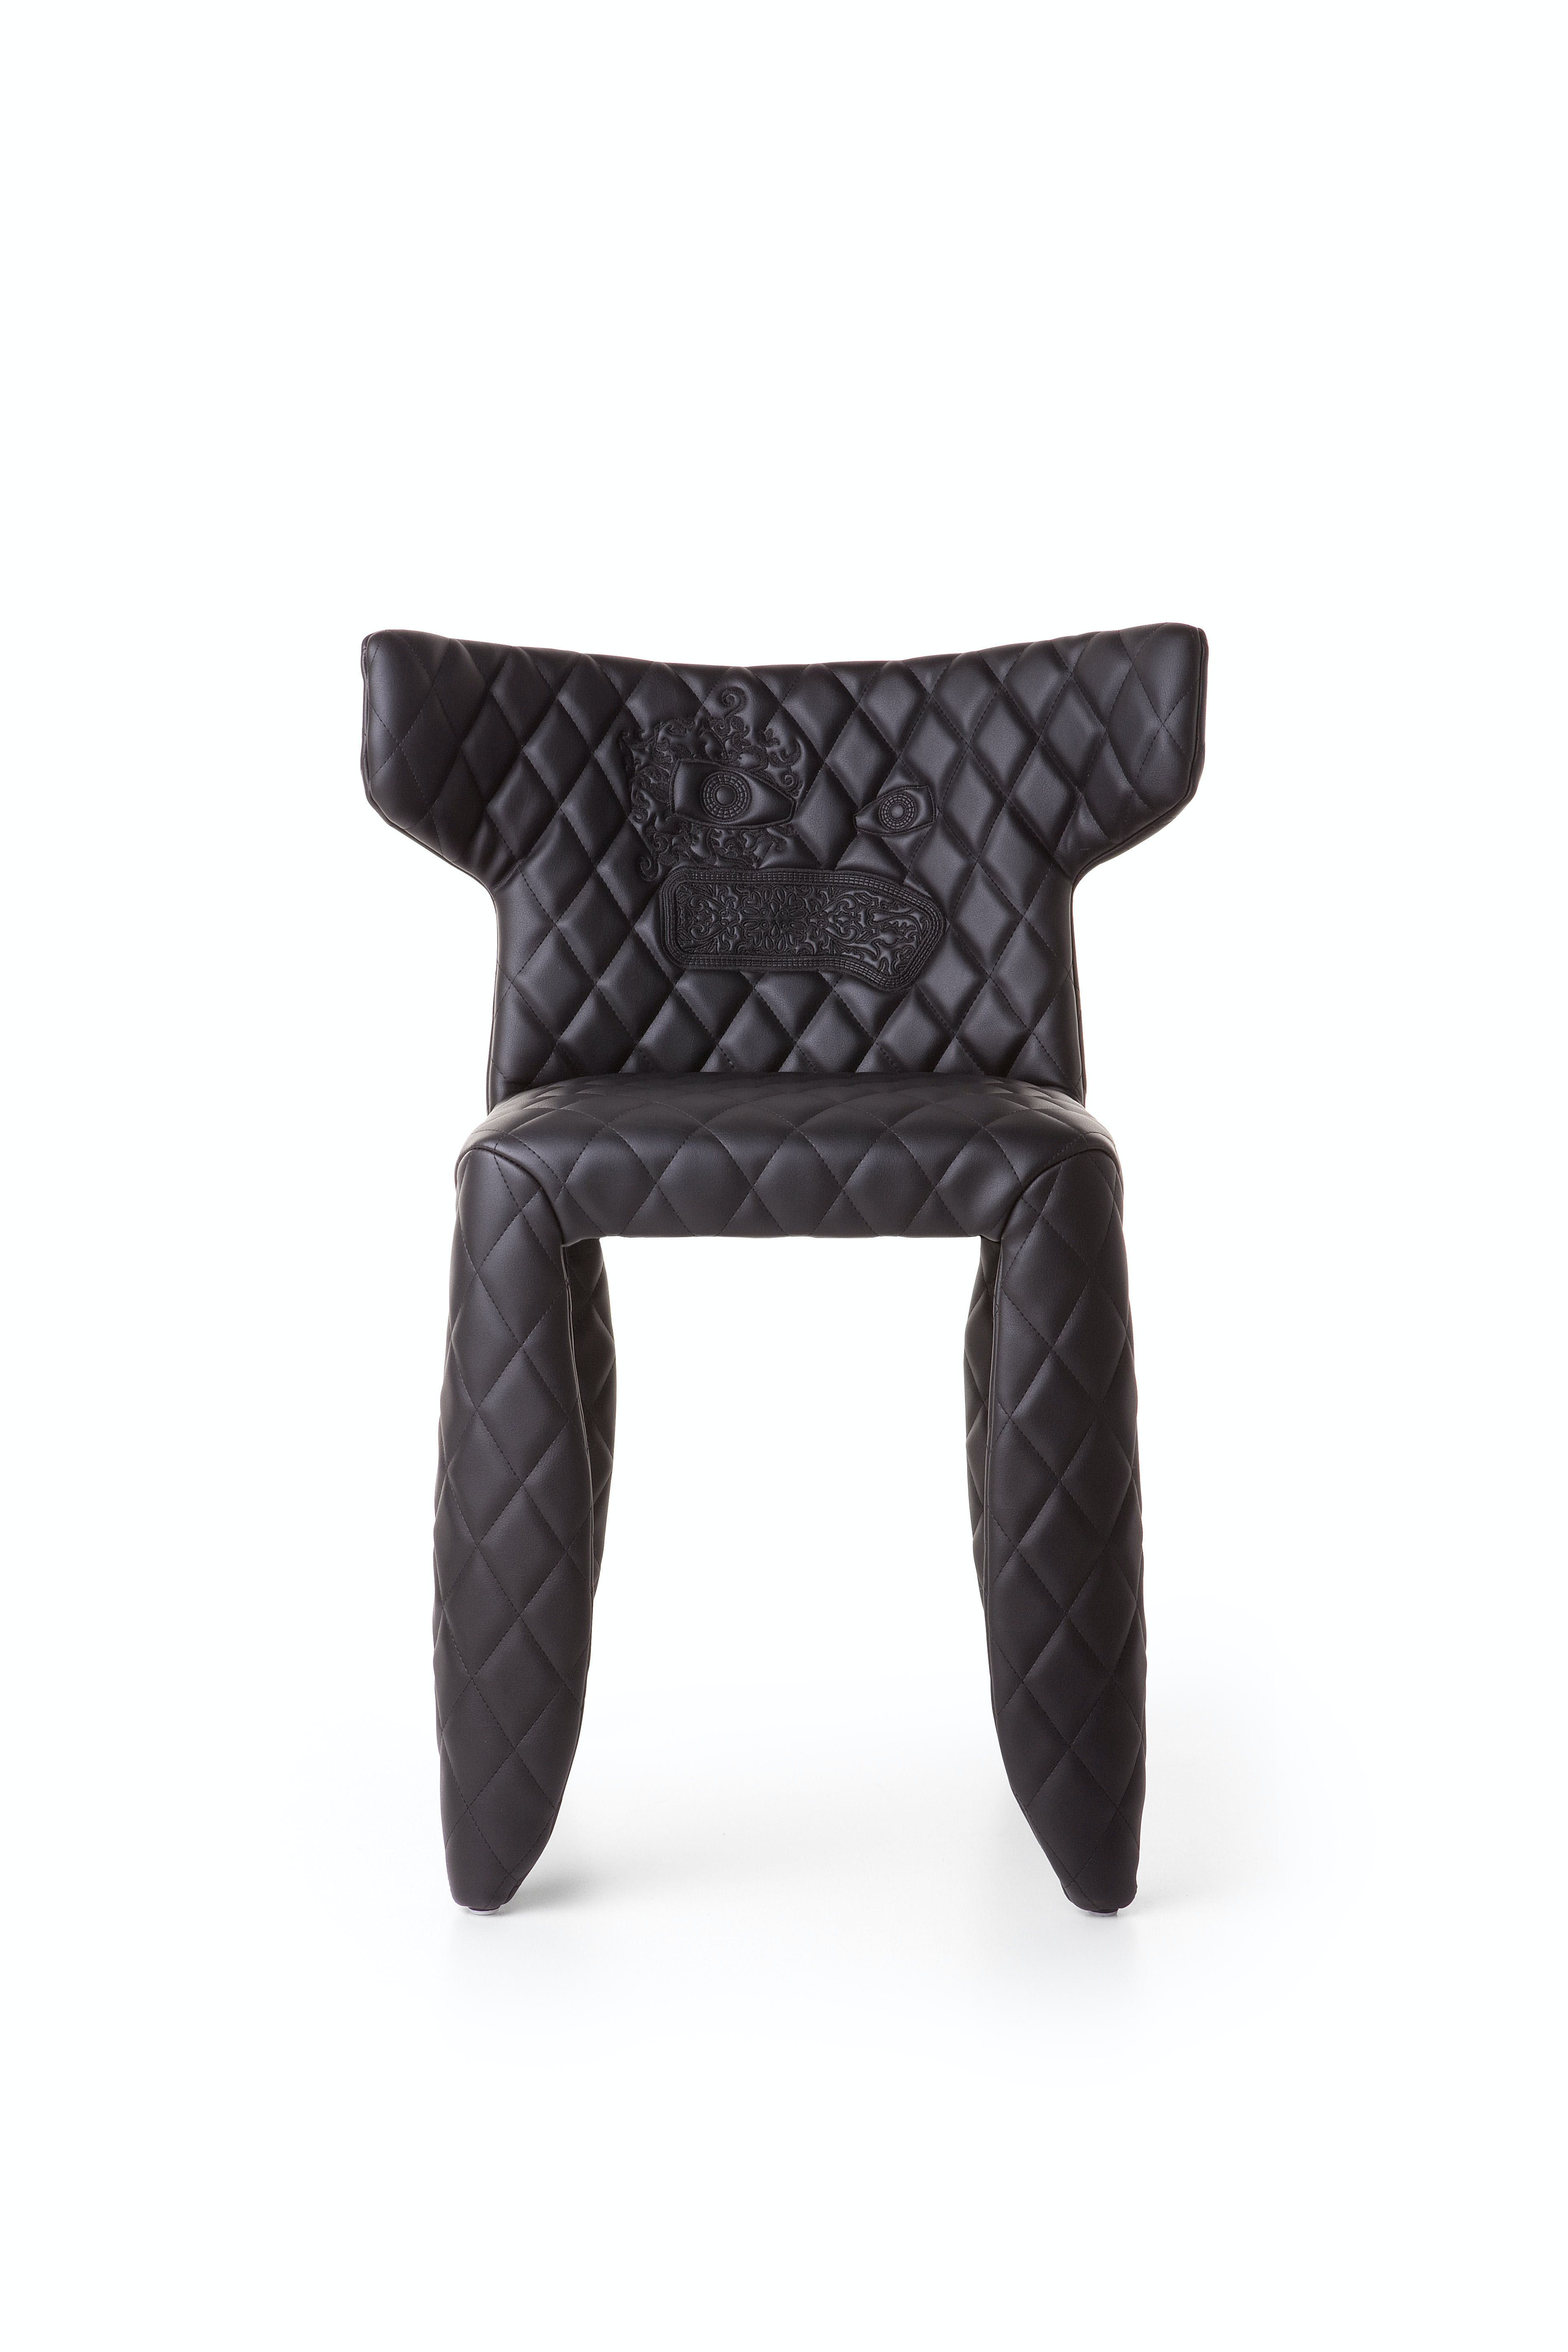 Monster Chair 2